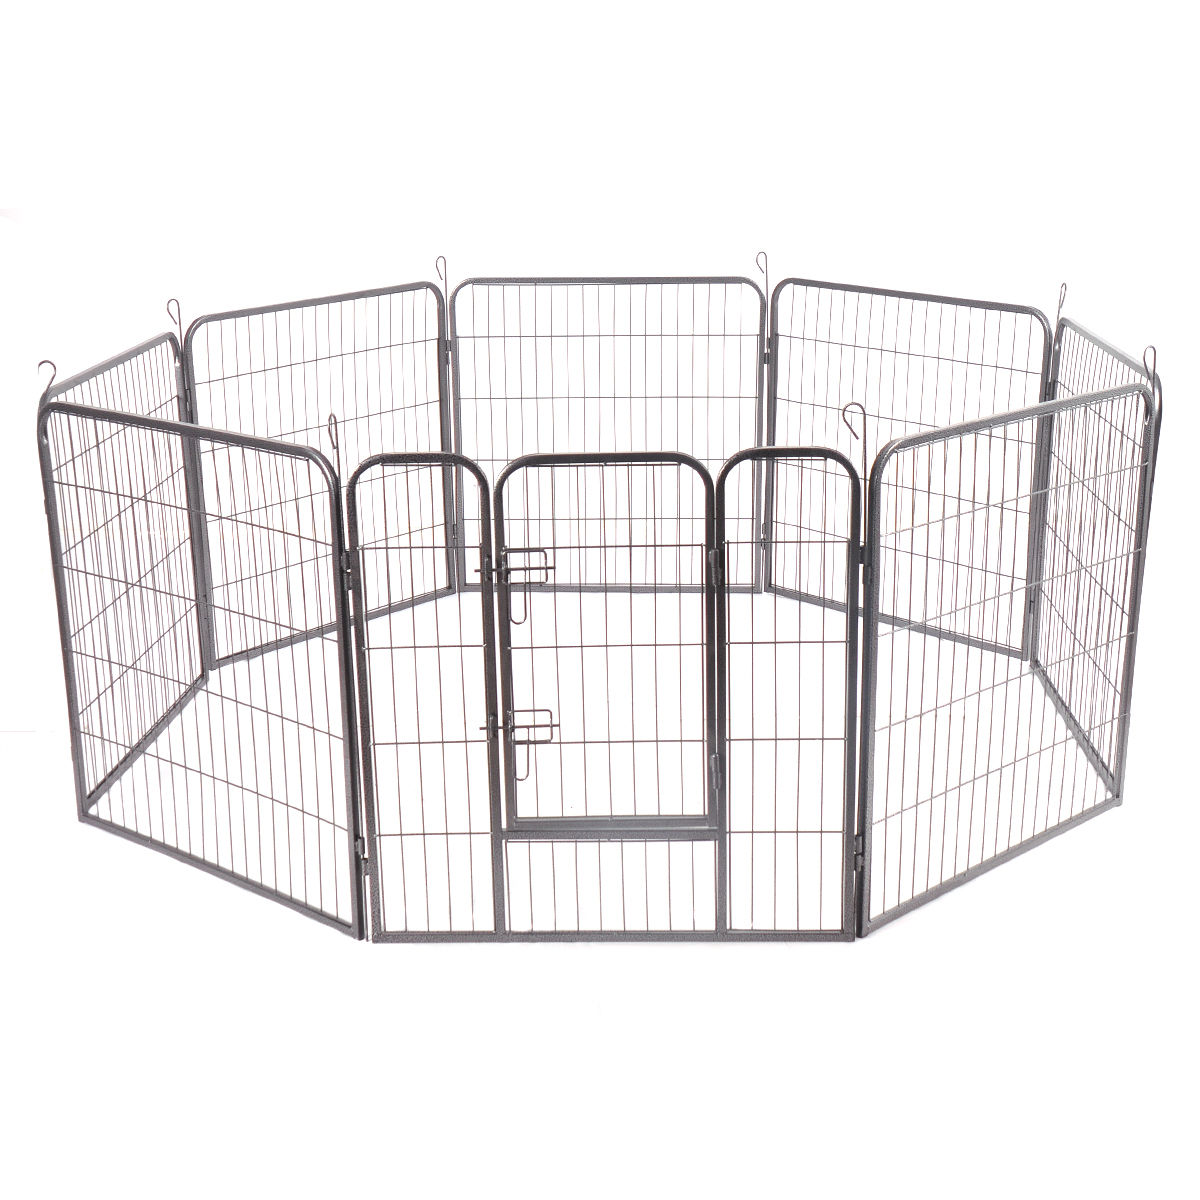 Gymax 32'' 8 Panel Pet Puppy Dog Playpen Door Exercise Kennel Fence Metal